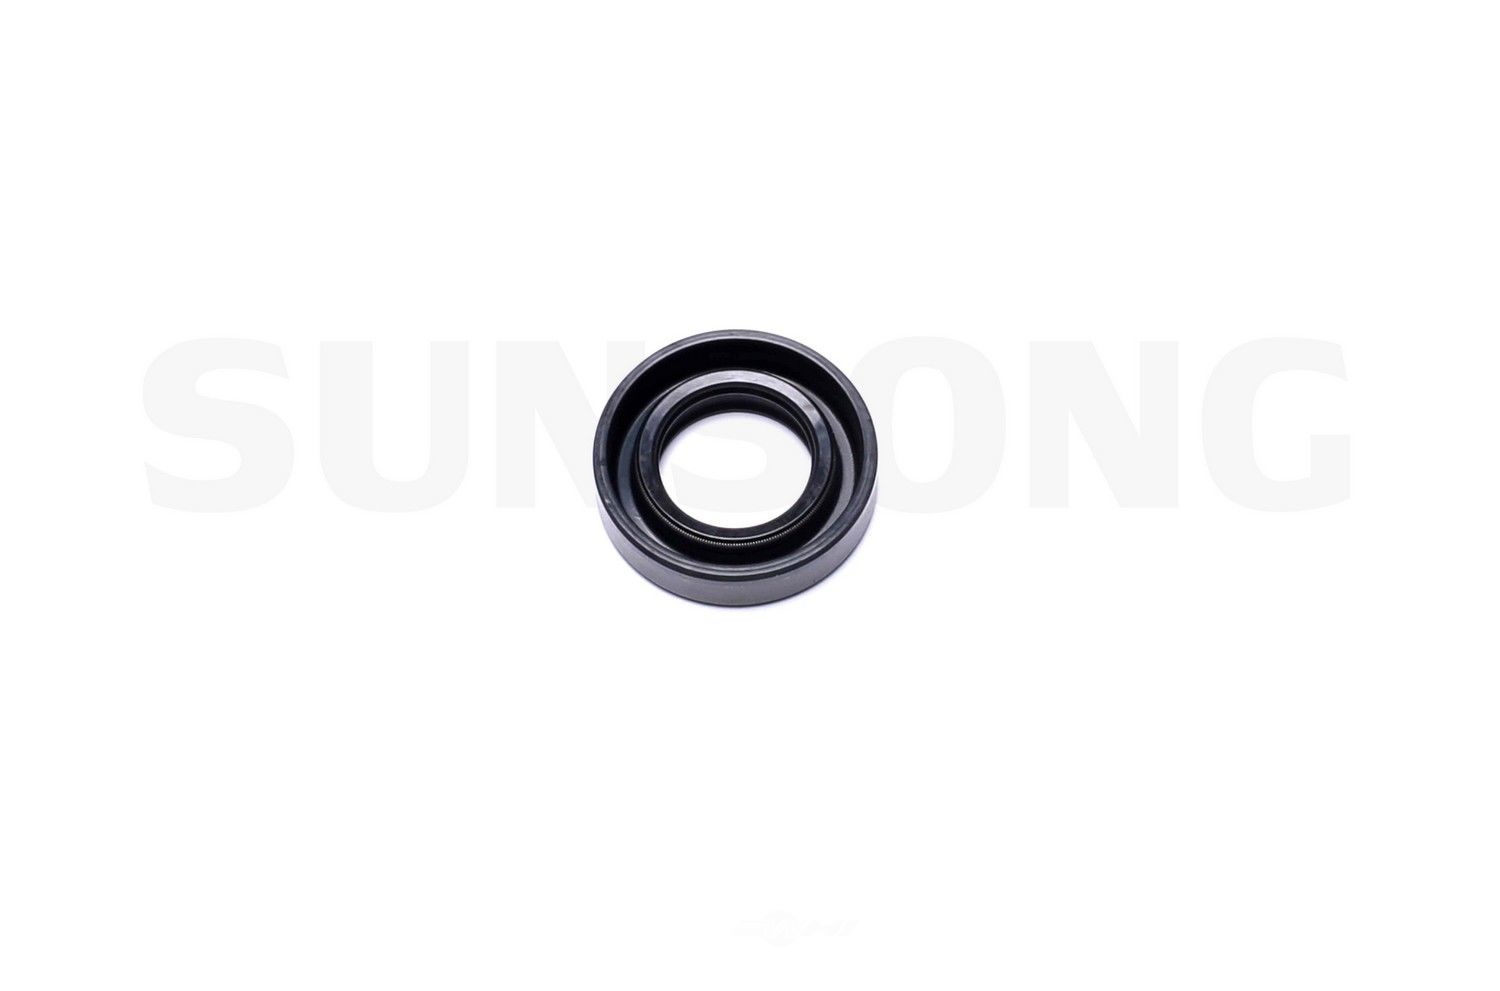 SUNSONG NORTH AMERICA - Power Steering Pump Drive Shaft Seal Kit - SUG 8401494